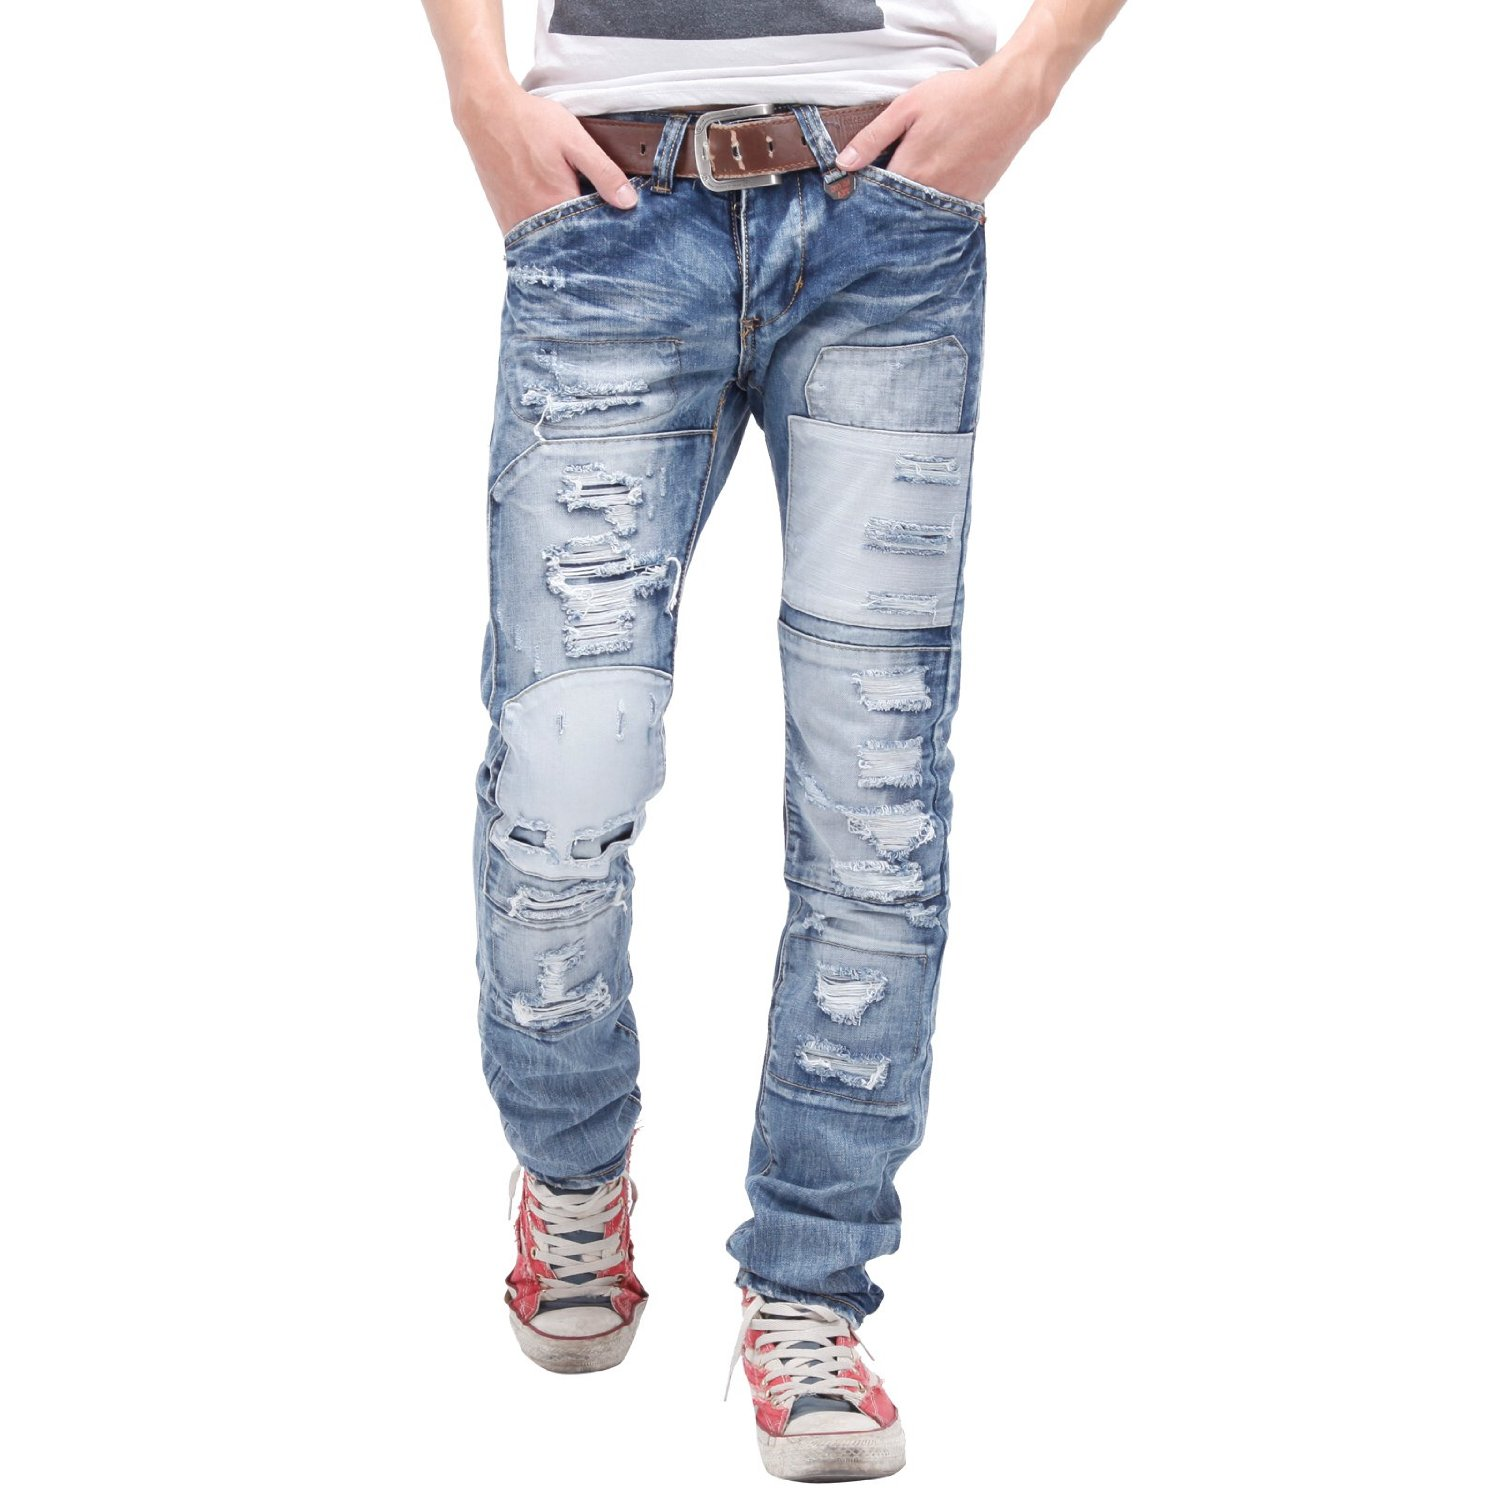 Men's Ripped Jeans Get the grunge look with our men's ripped jeans. They're a great way to inject some attitude into your outfit and will look awesome paired with a leather jacket and a pair of boots.